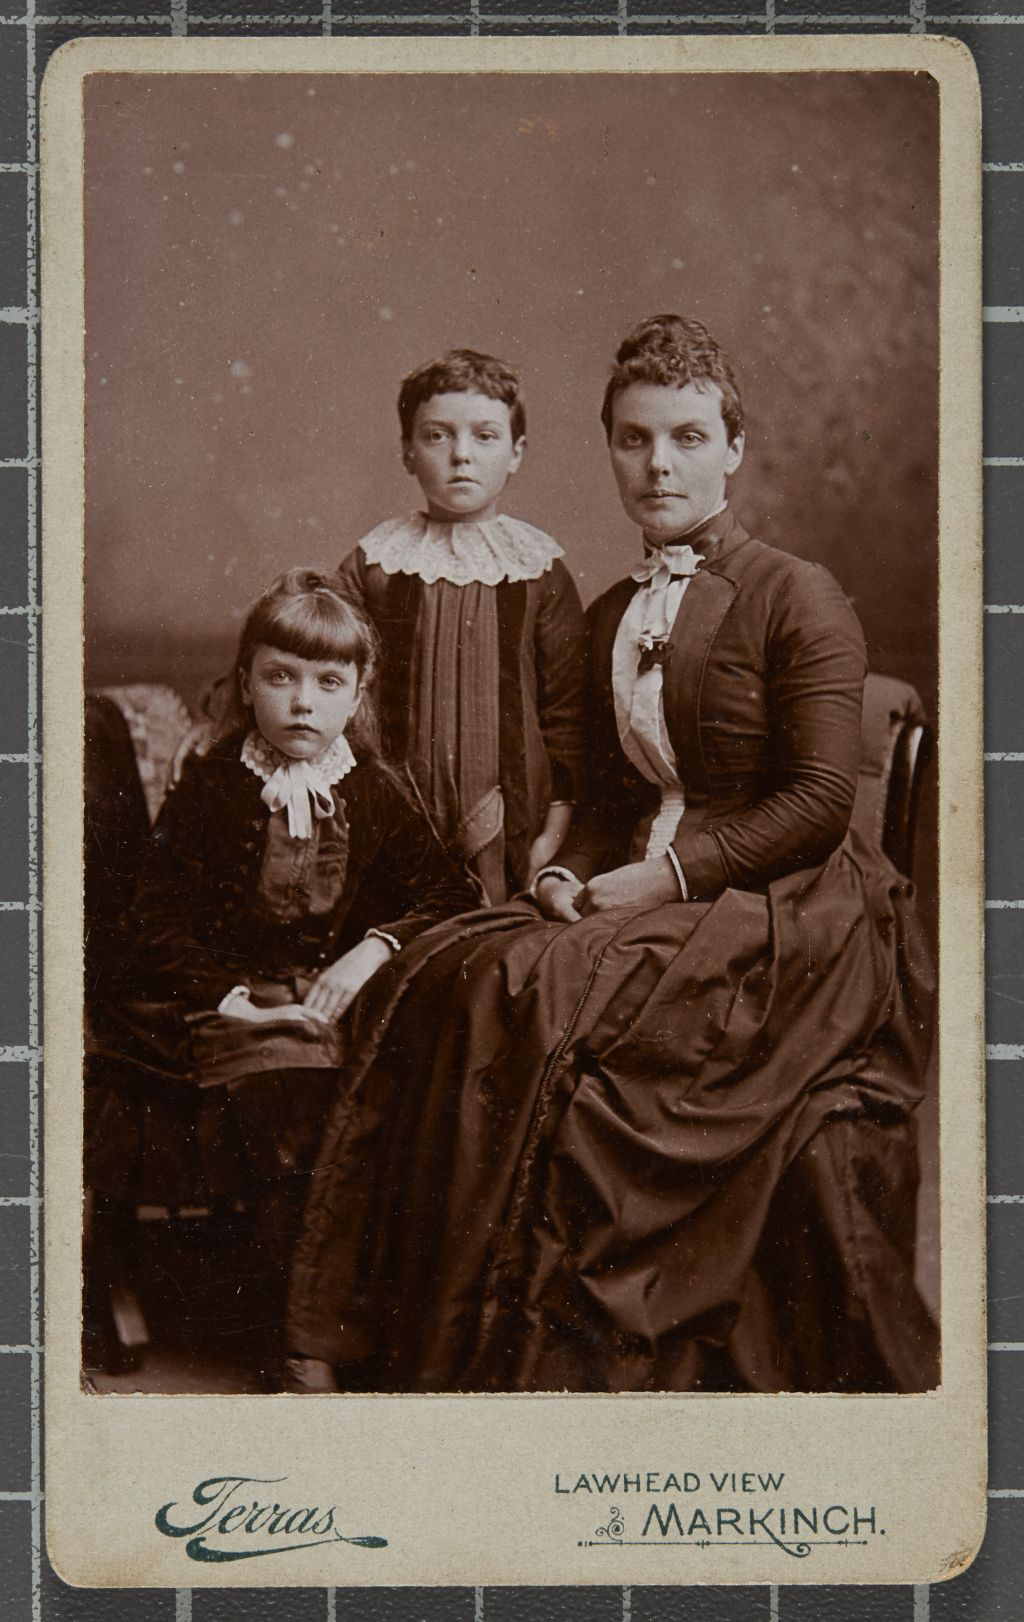 Group studio portrait of a woman and a young girl seated and a young boy standing.